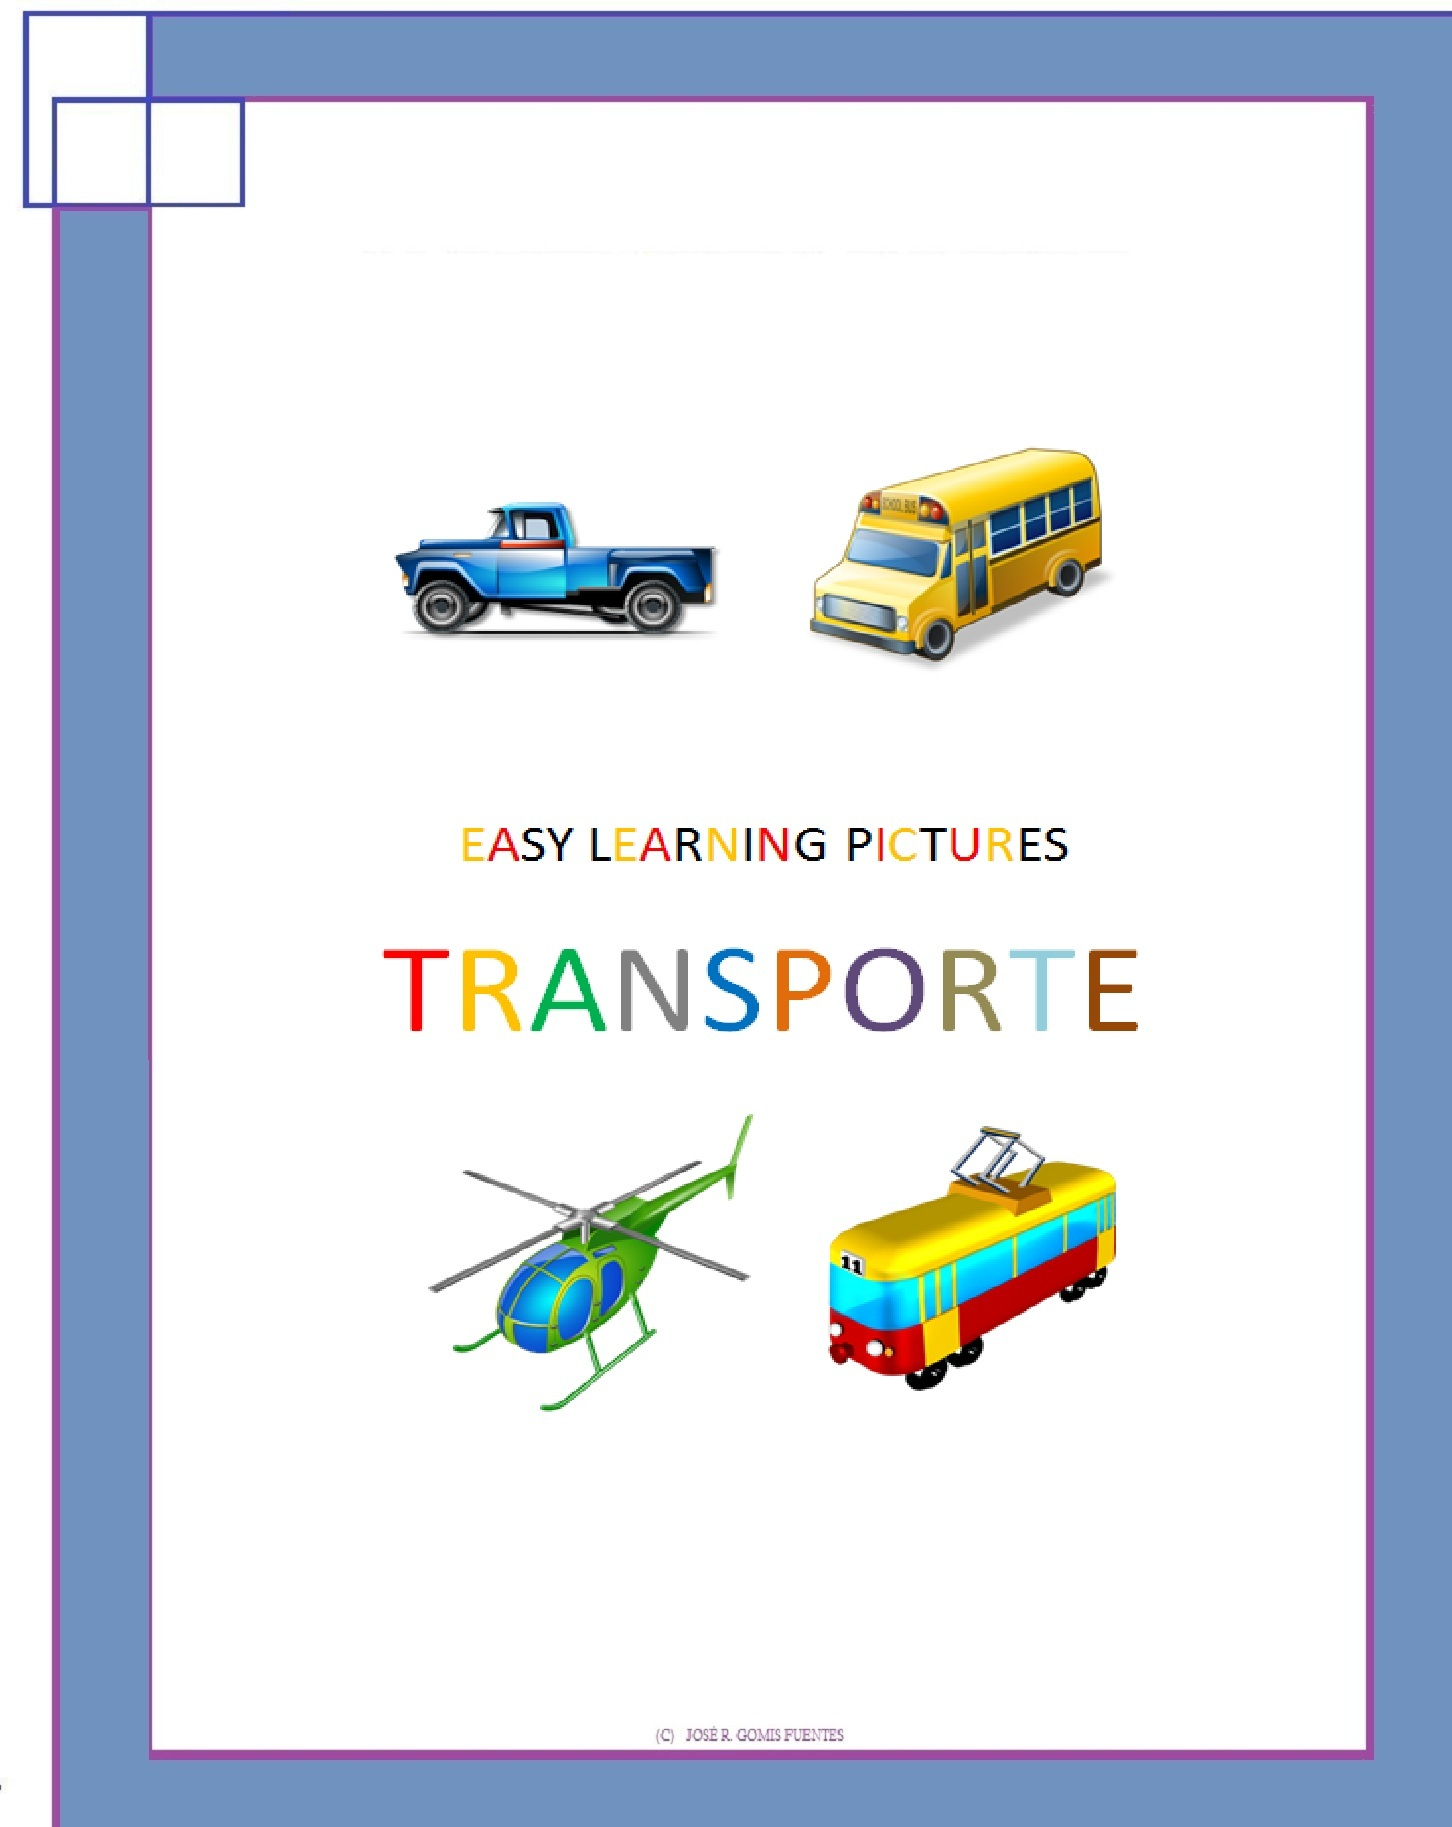 Easy Learning Pictures. Transporte By: Jose Remigio Gomis Fuentes Sr